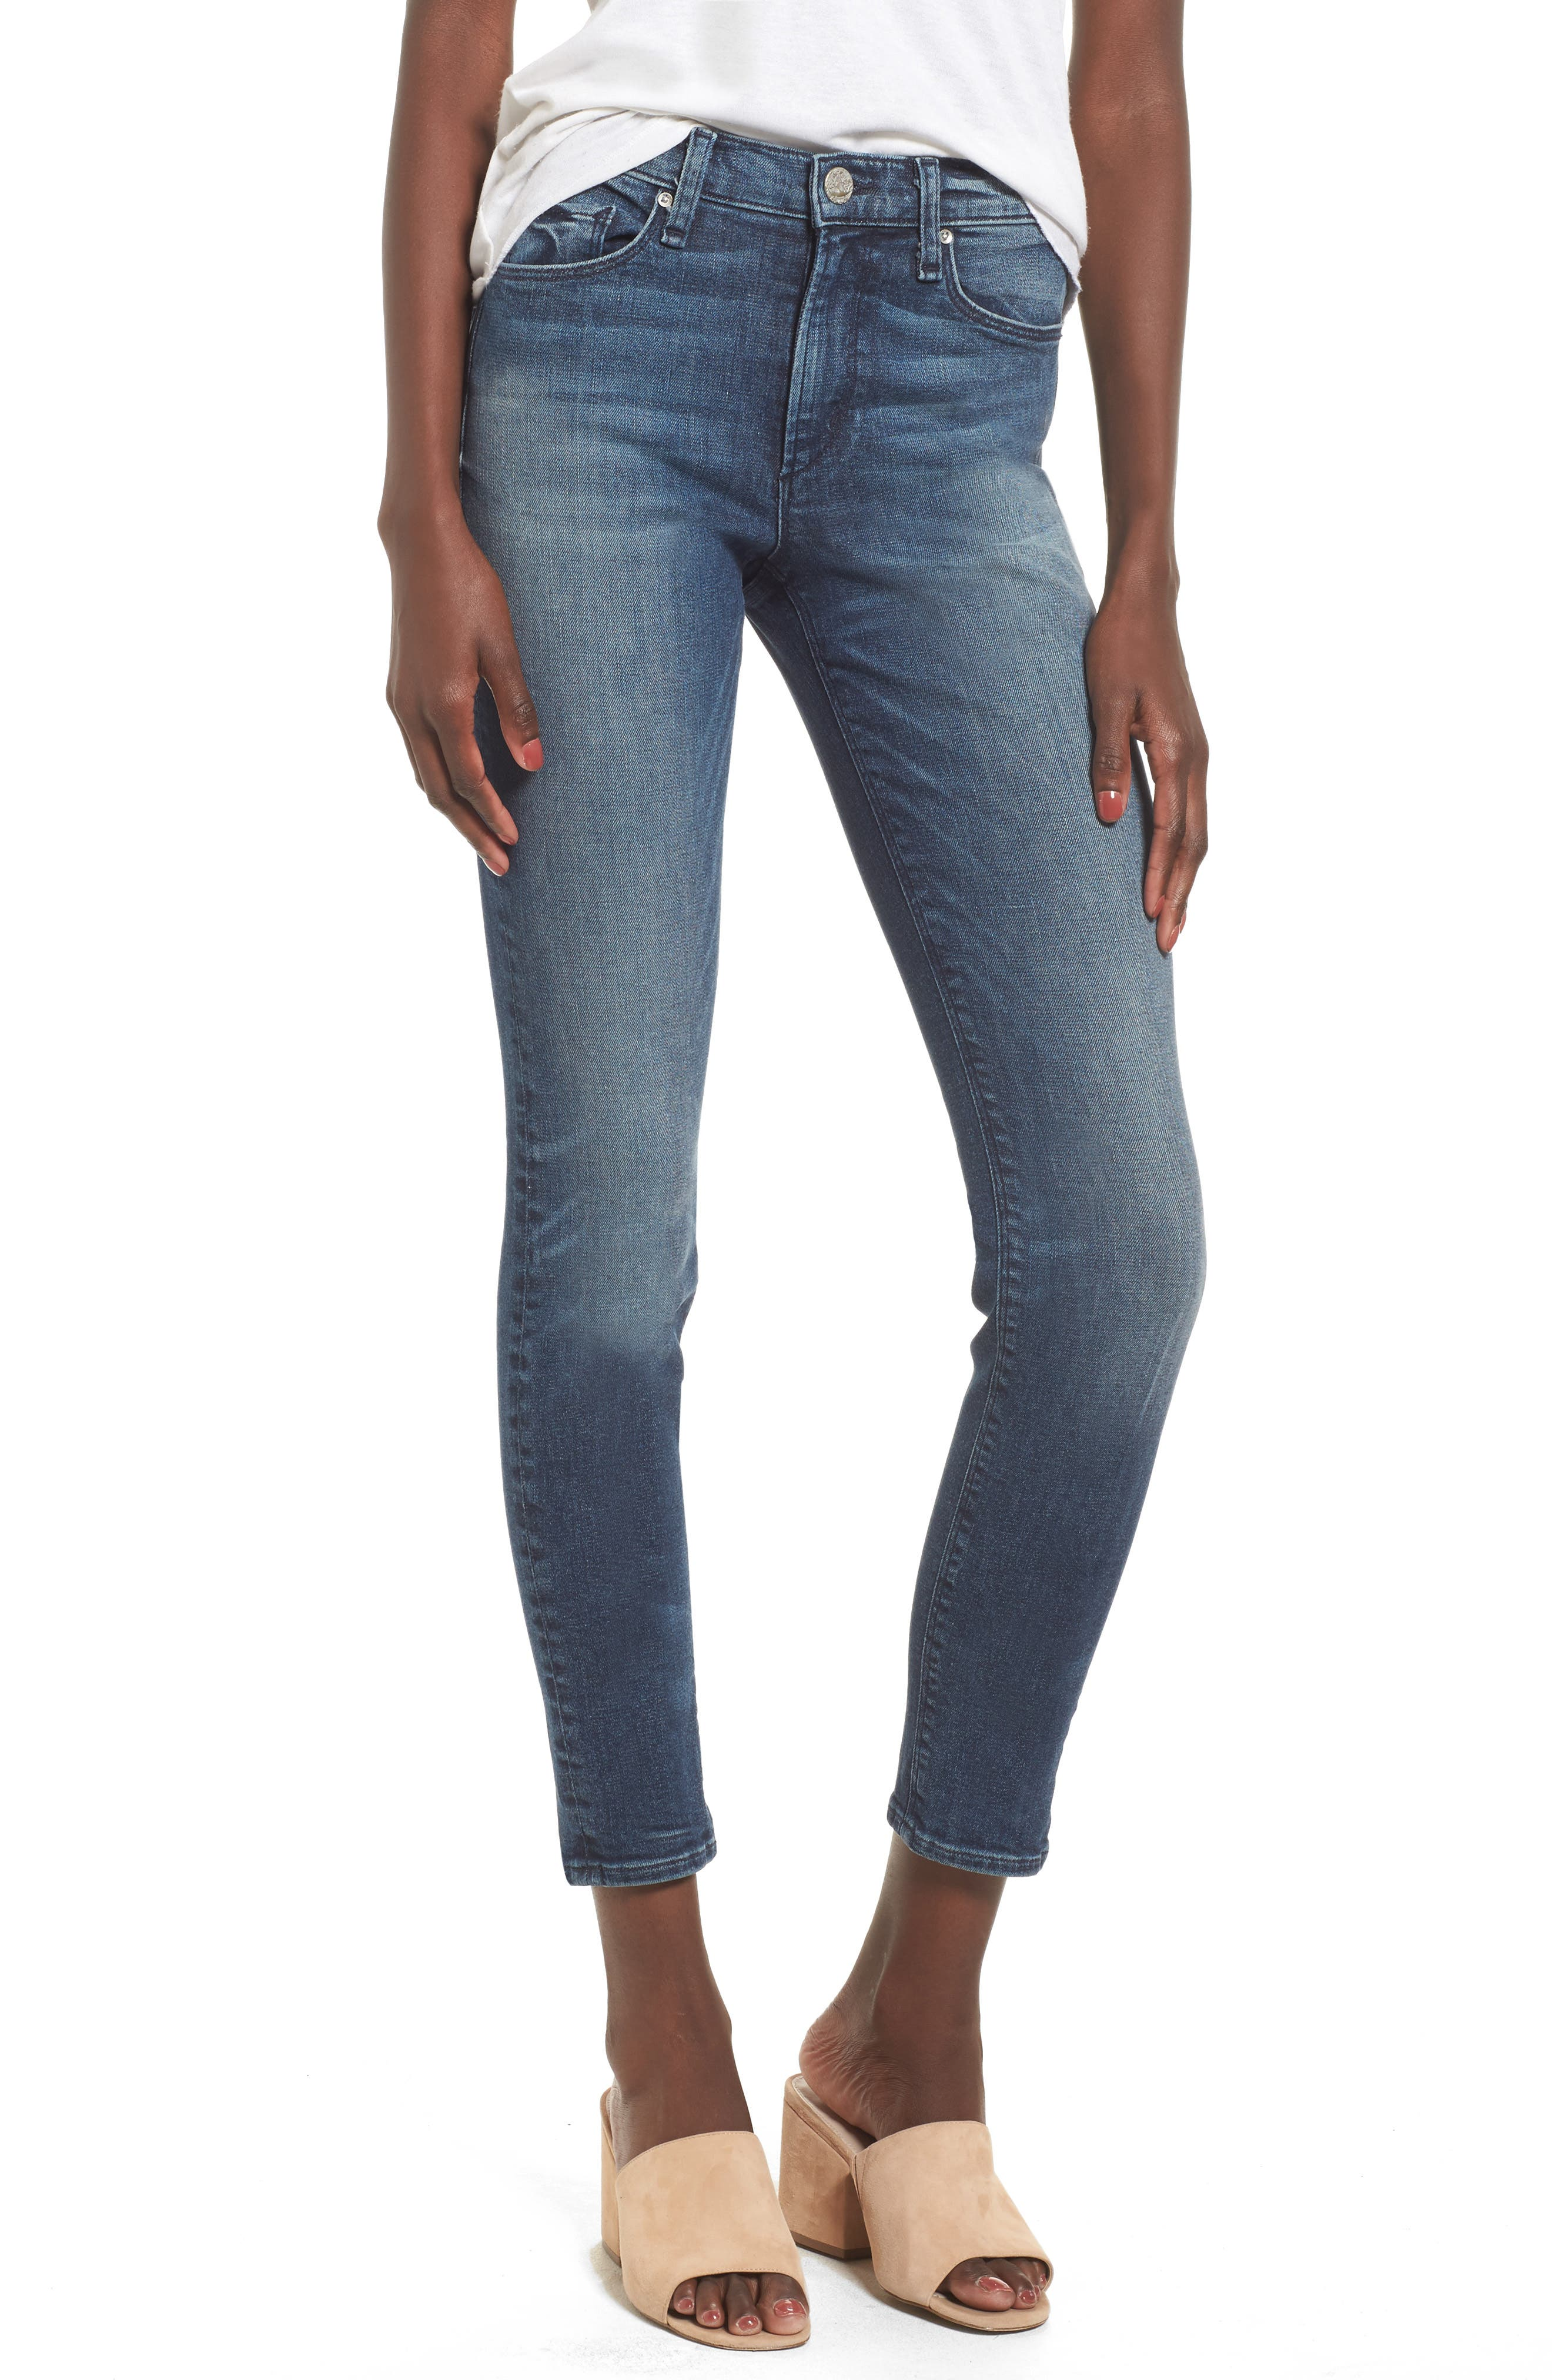 Alternate Image 1 Selected - McGuire Newton High Waist Skinny Jeans (Isle in the Sky)